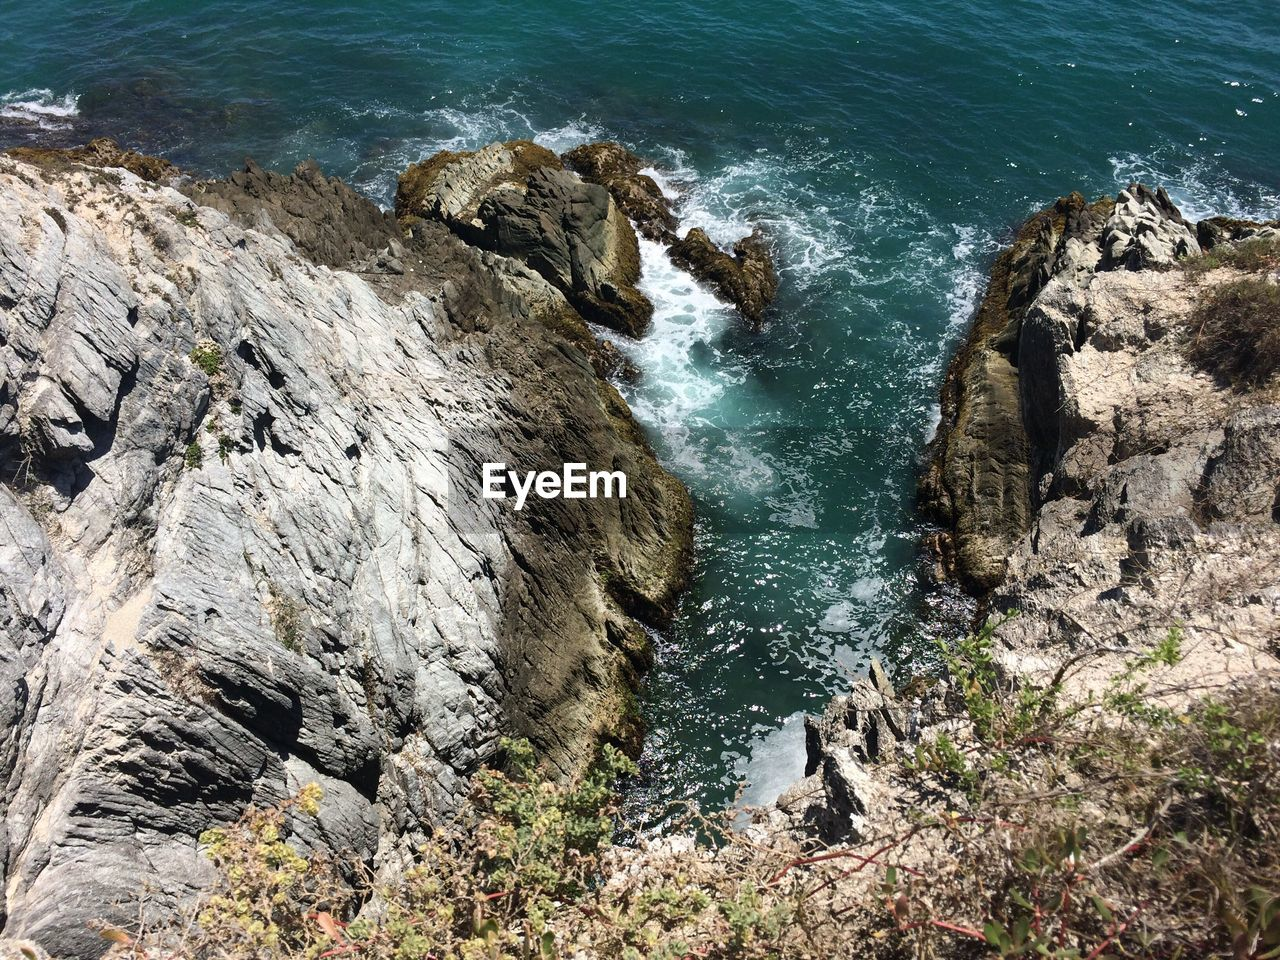 rock - object, water, sea, rock formation, nature, high angle view, beauty in nature, no people, day, scenics, cliff, outdoors, motion, wave